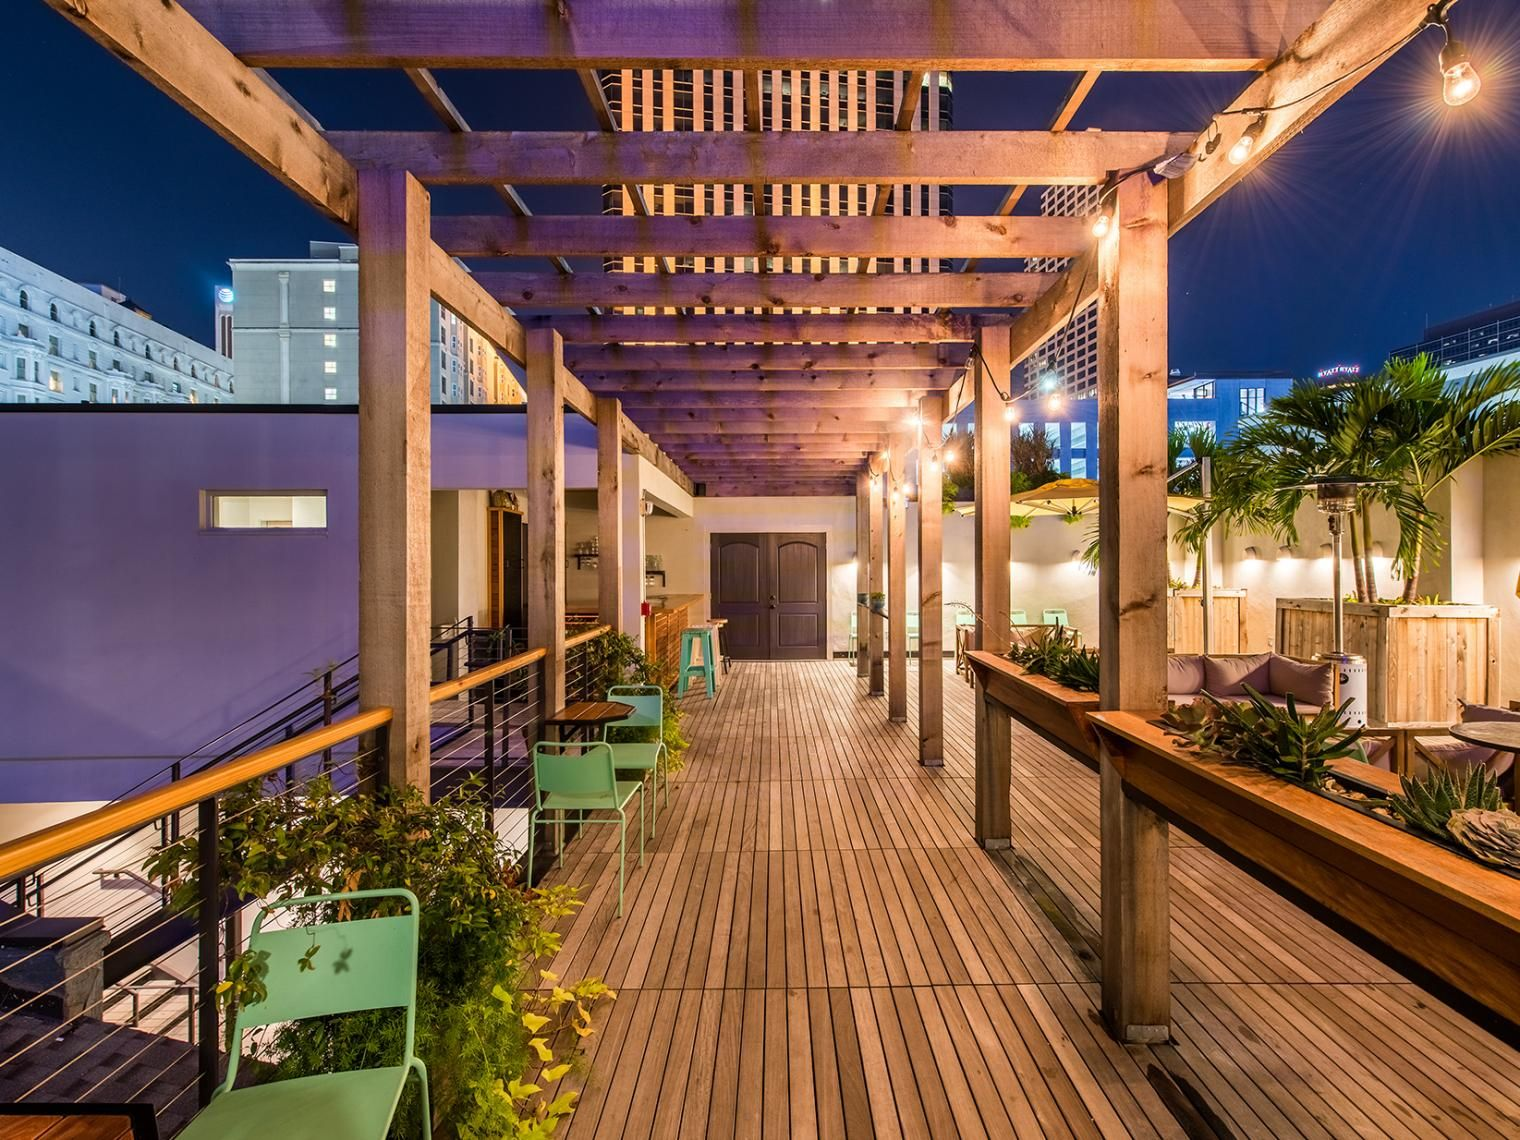 20 of the Greatest American Rooftop Bars for Outdoorsy